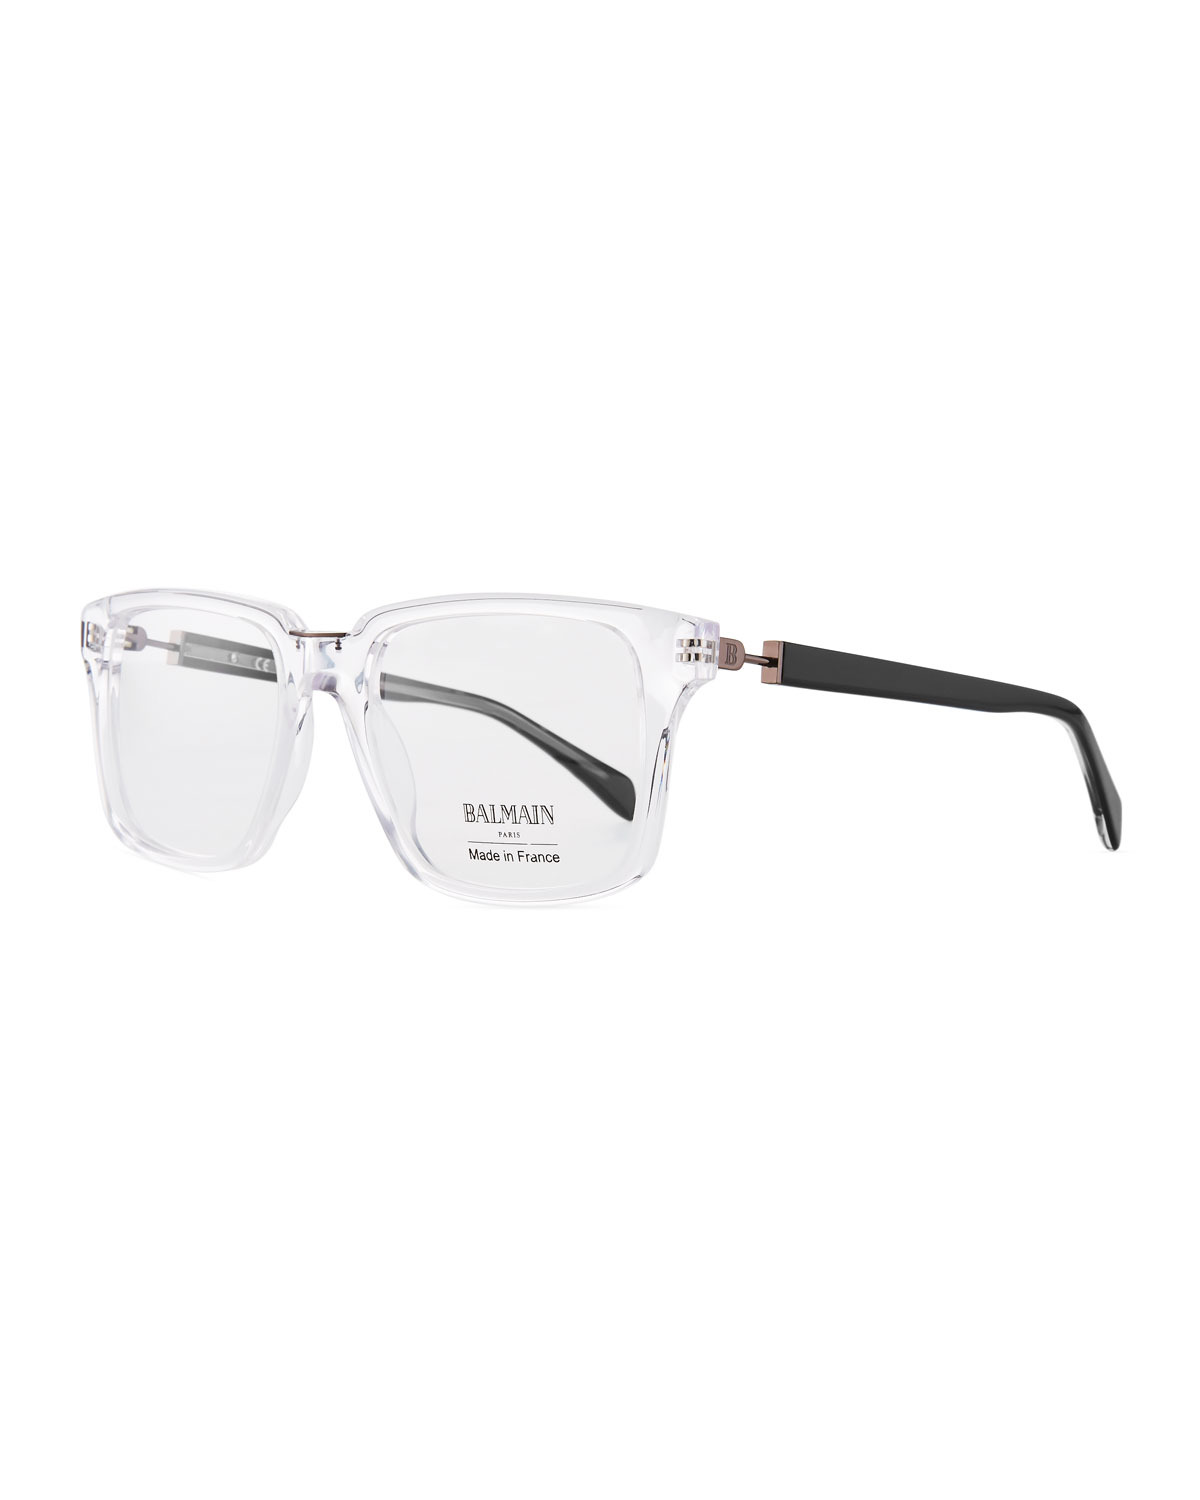 216da89144 Balmain clear acetate square optical glasses neiman marcus balmain glasses  jpg 1200x1500 Glasses balmain bl700302